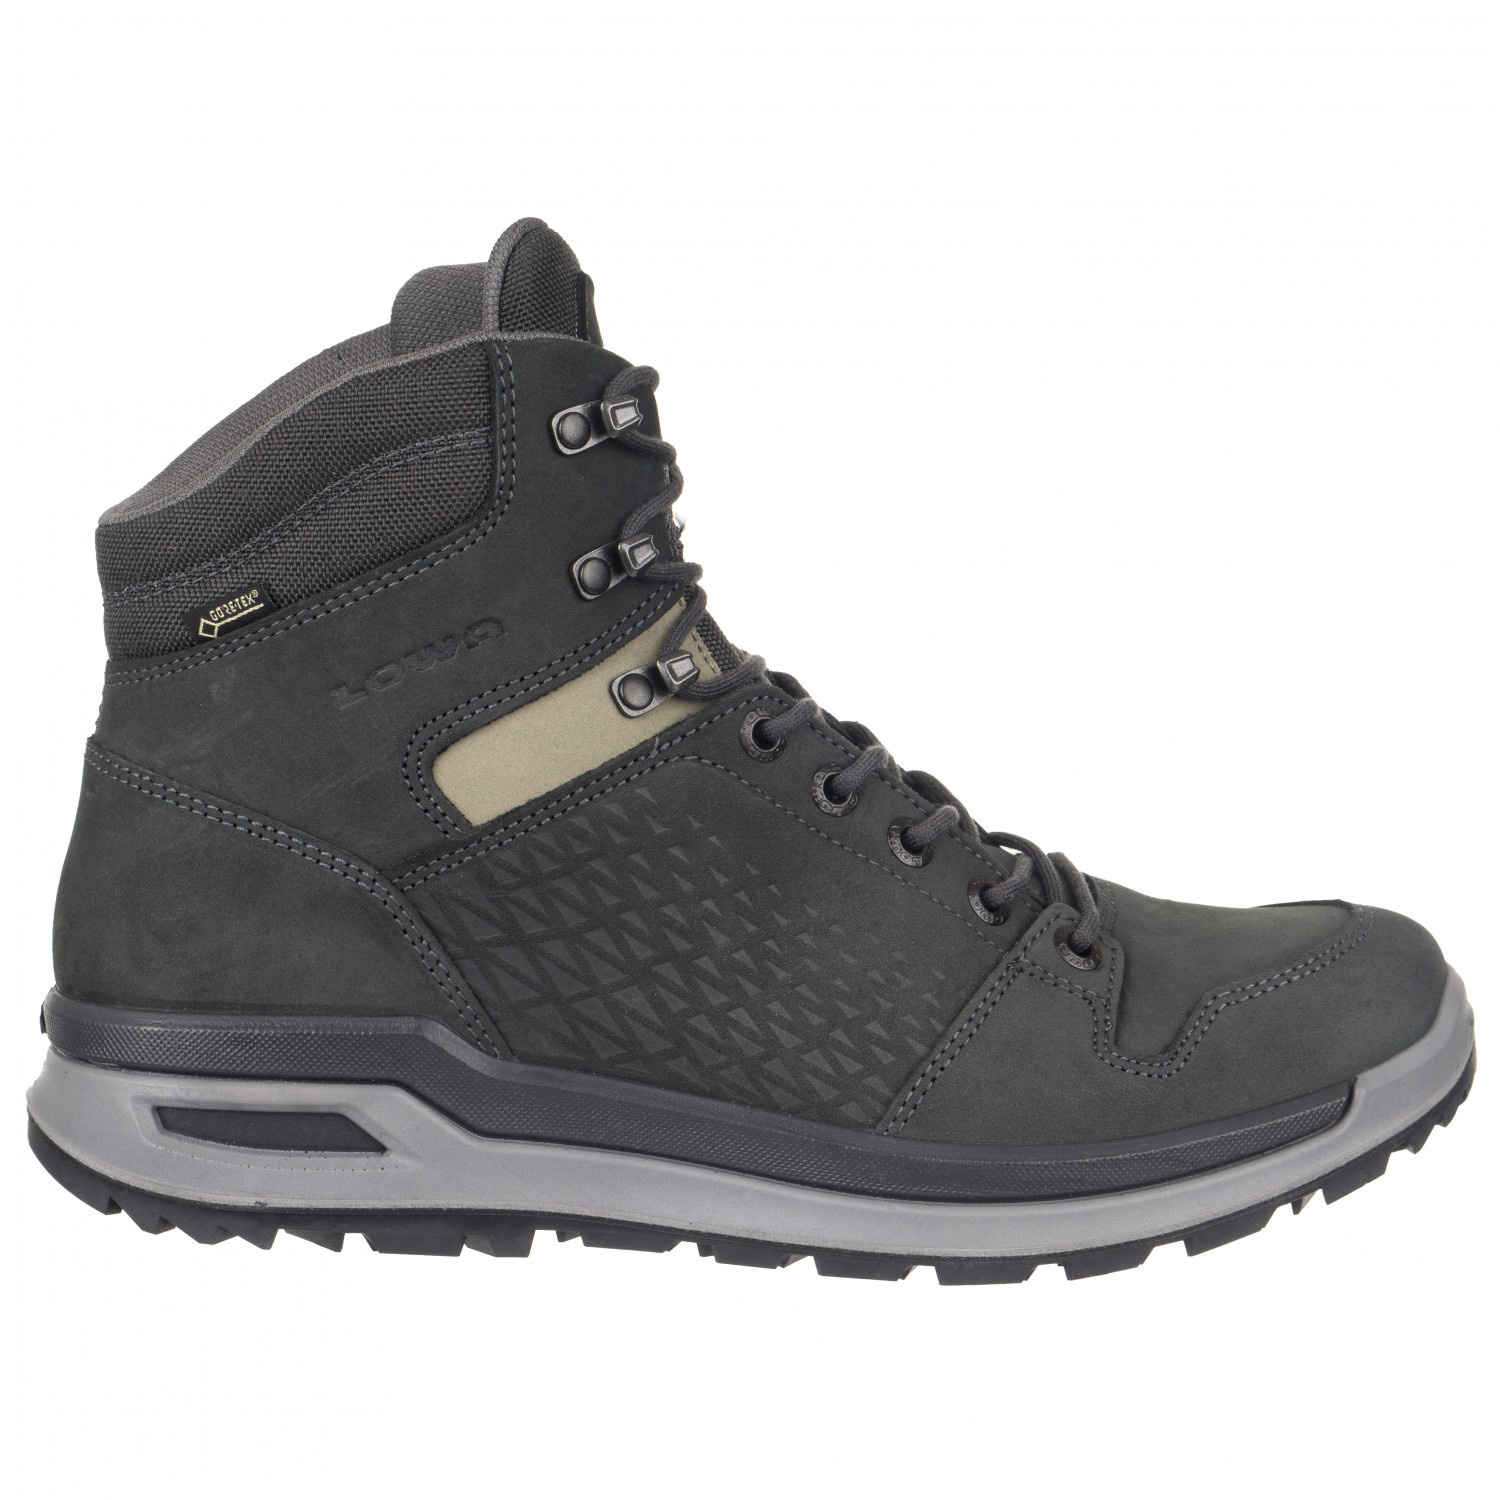 Lowa Locarno Gtx Mid - Walking Boots Men's | Free UK